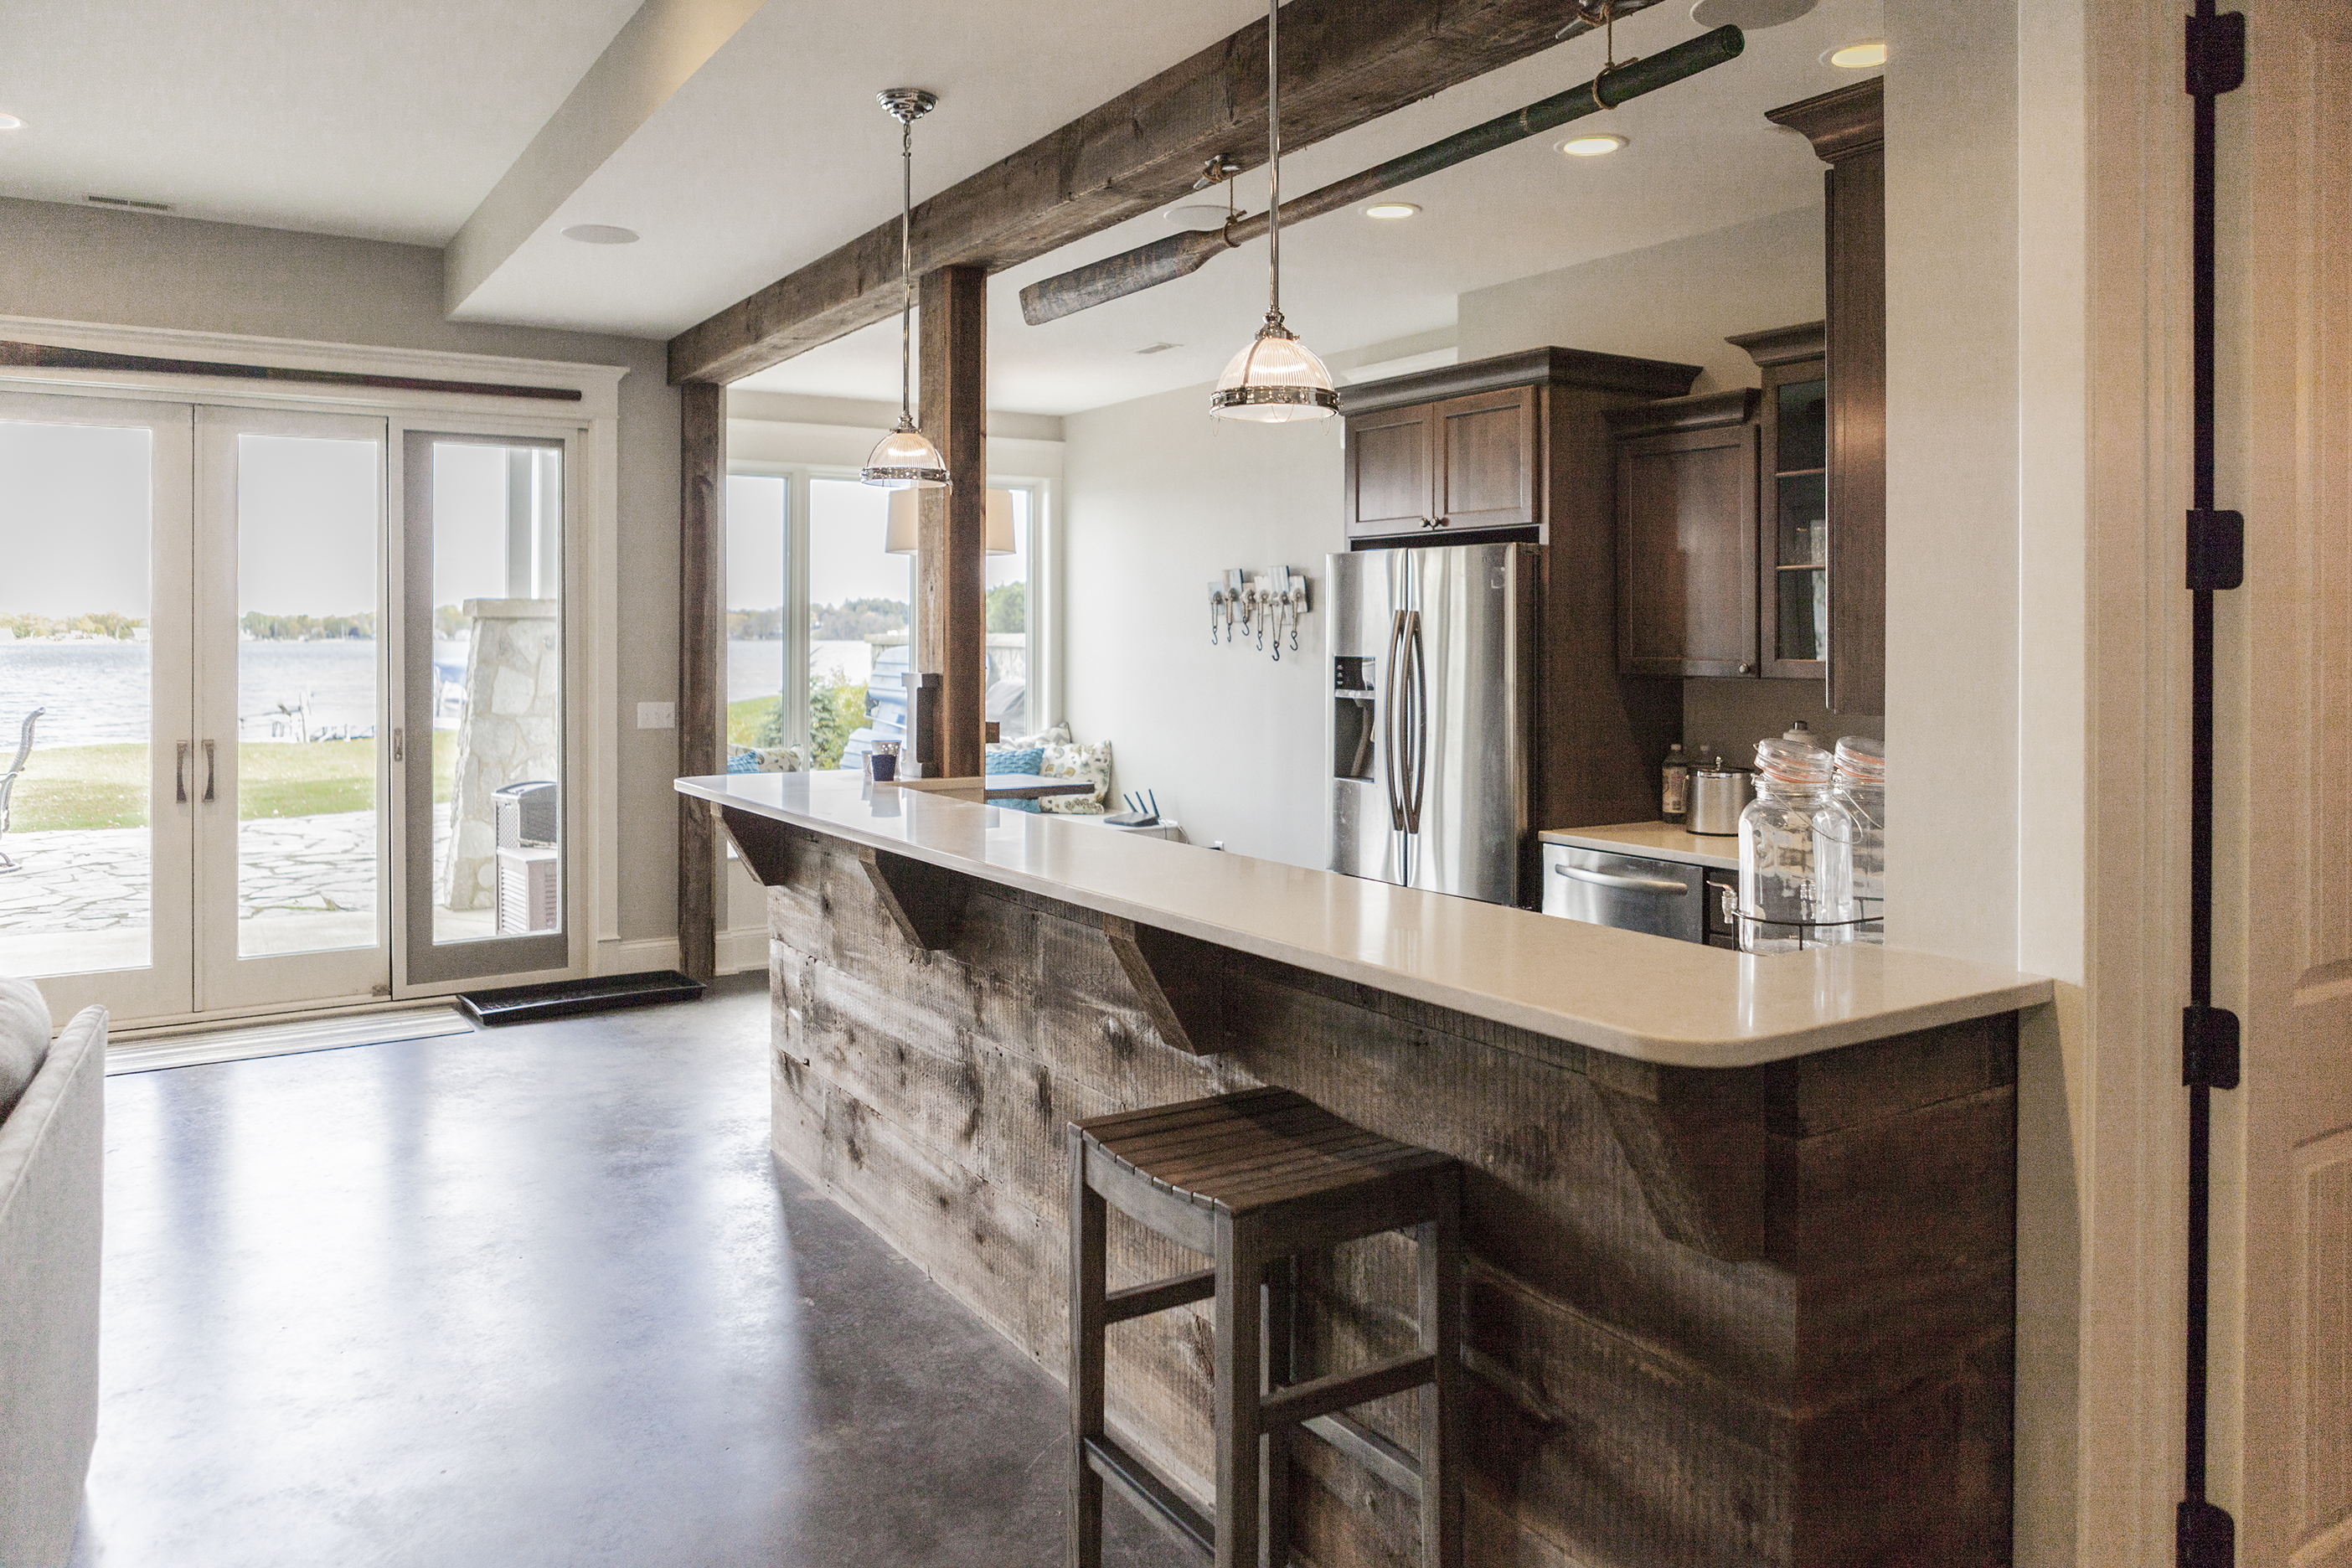 Walk-out basement bar with a wood plank bar topped by white quartz countertops.